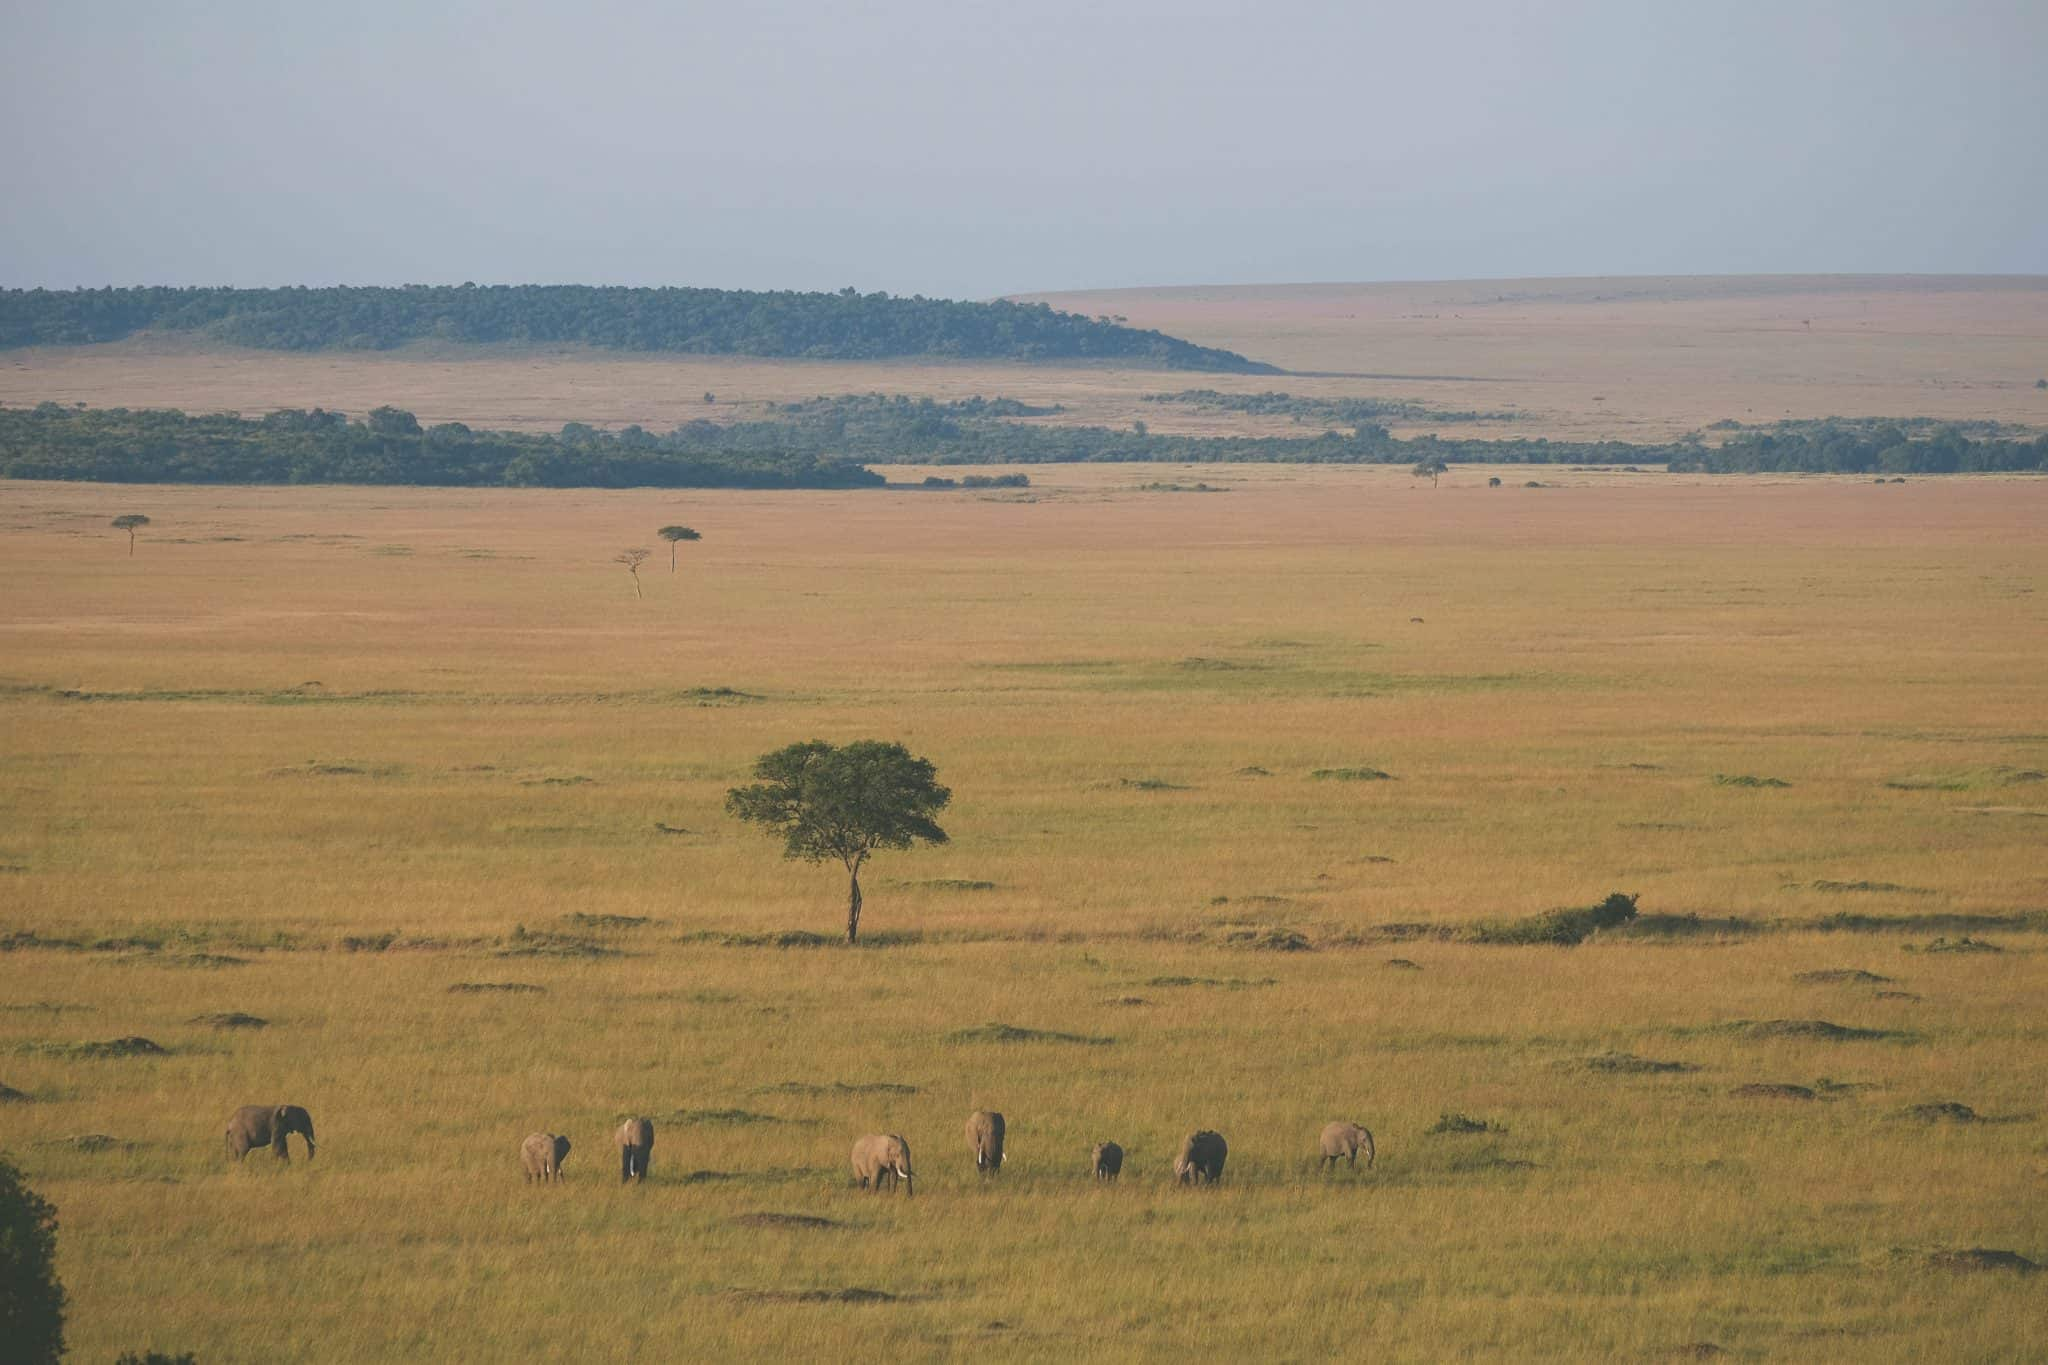 Over the Masai Mara